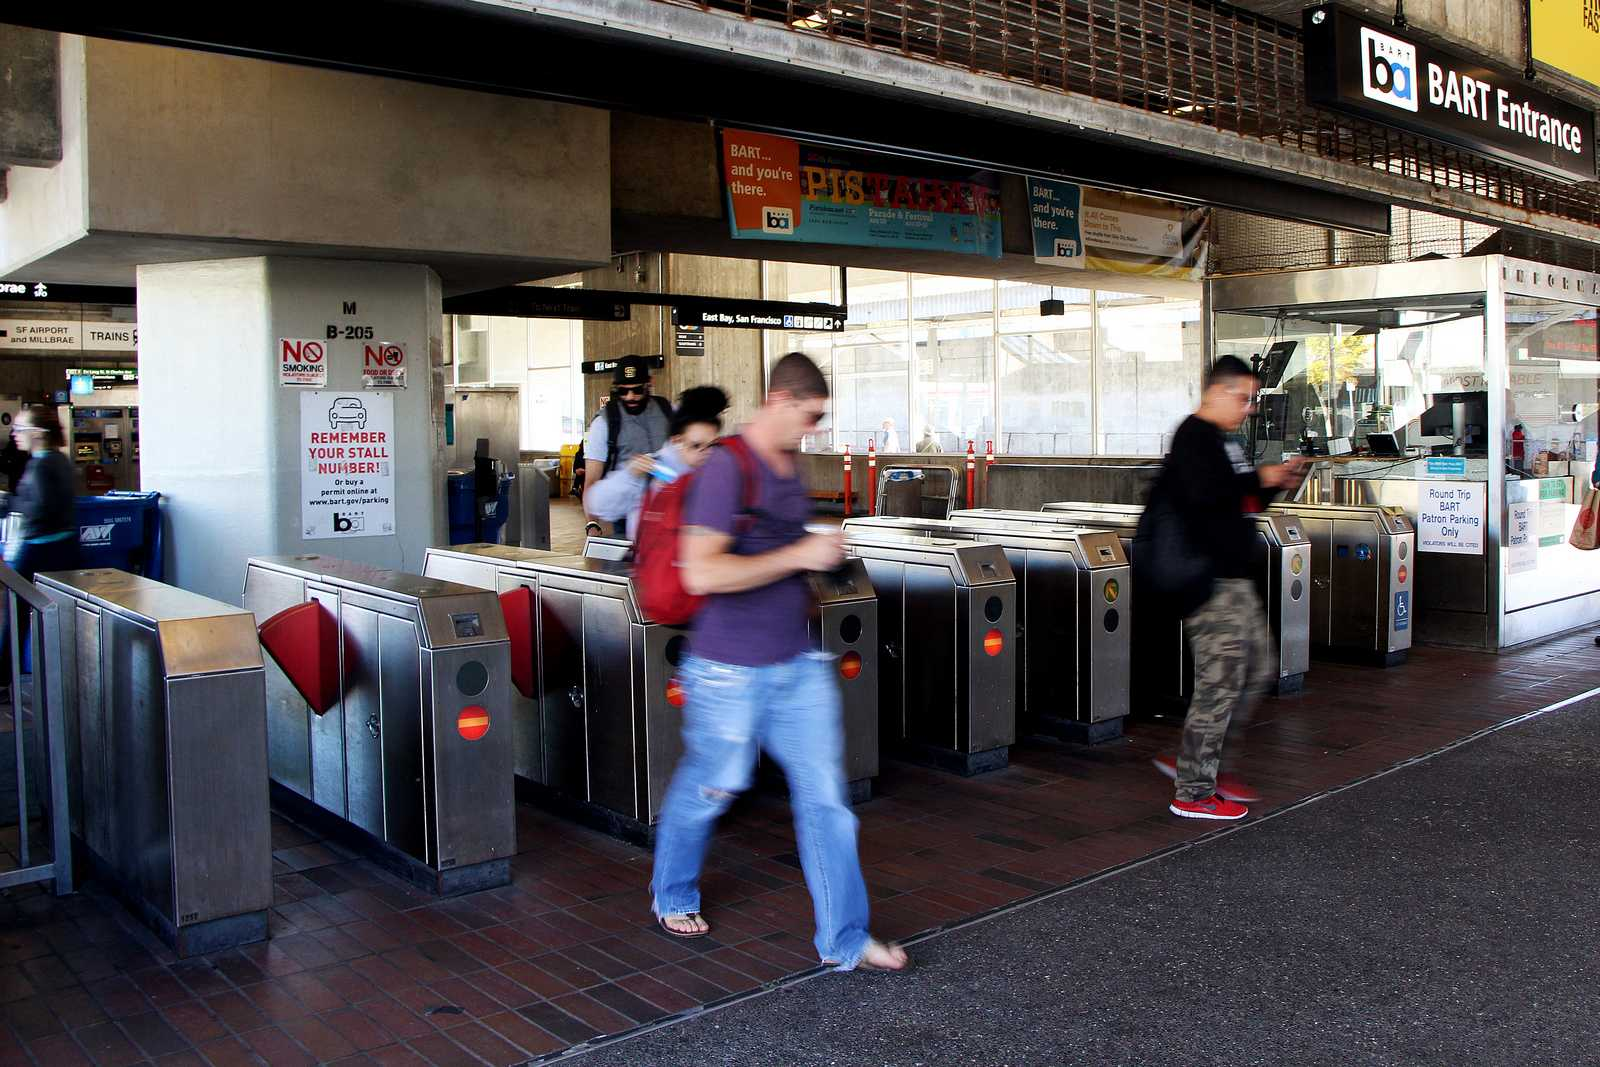 The Daly City BART station coninues to operate normally on Friday, Oct. 24th, 2013. The BART union and management are still in negotiations, which still leaves the possibility of another BART strike next week. Photo by Gavin McIntyre / Xpress